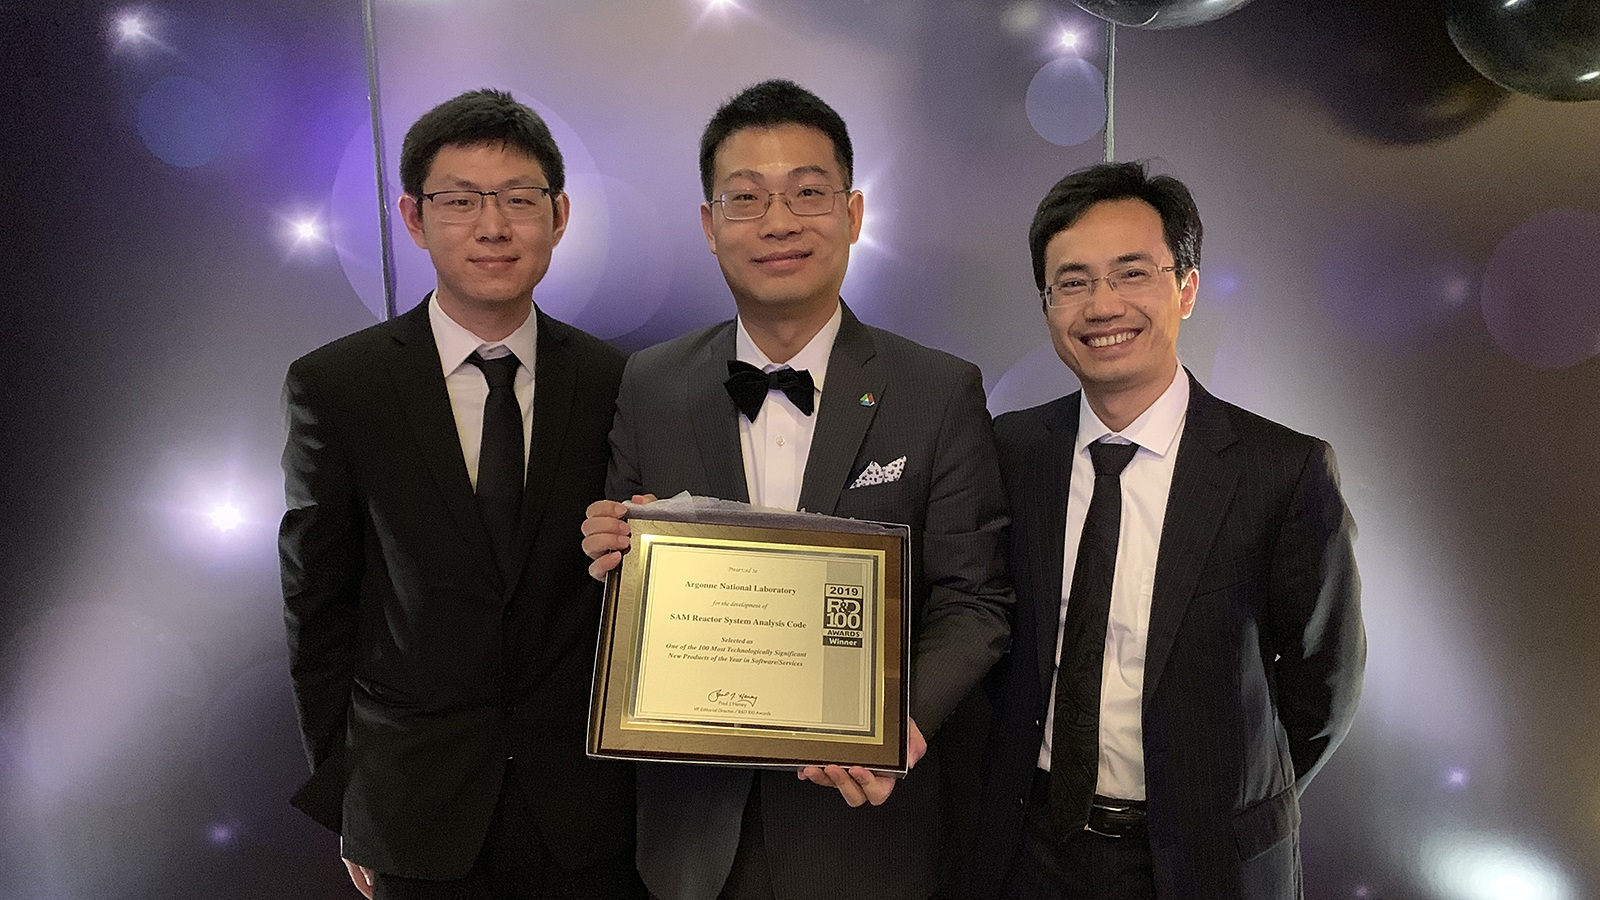 R&D 100 award winners, Guojun Hu, Rui Hu, and Ling Zou.